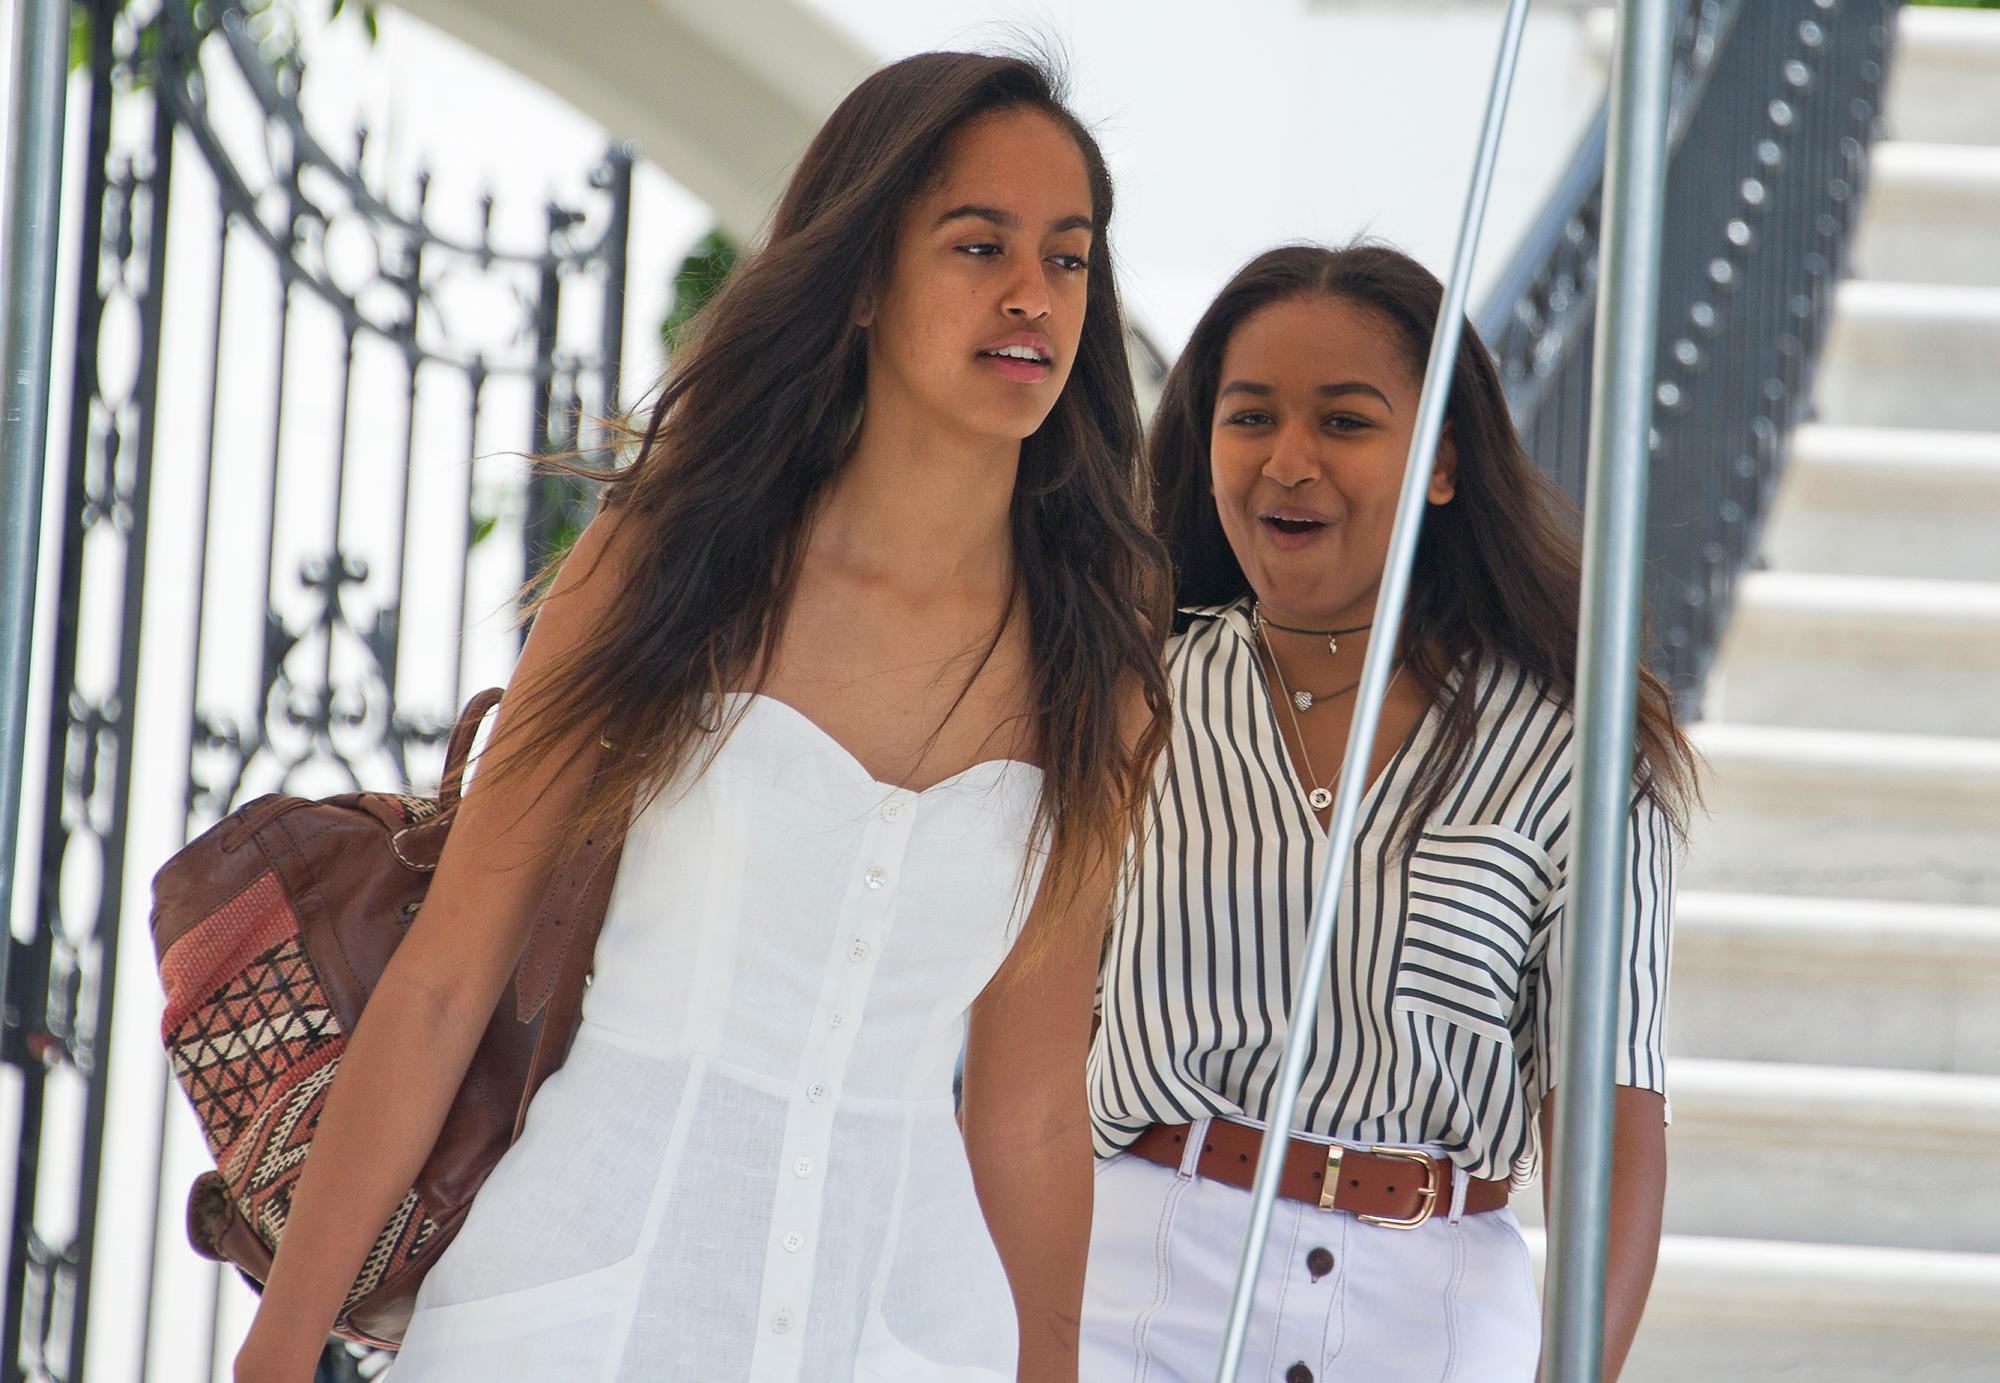 Celebrity Siblings - These two grew up in the public eye during their formative years, when father Barack Obama served as the 44th president of the United States from 2009 to 2017. Malia became a student at Harvard University in August 2017, while Sasha is reportedly considering the University of Michigan.